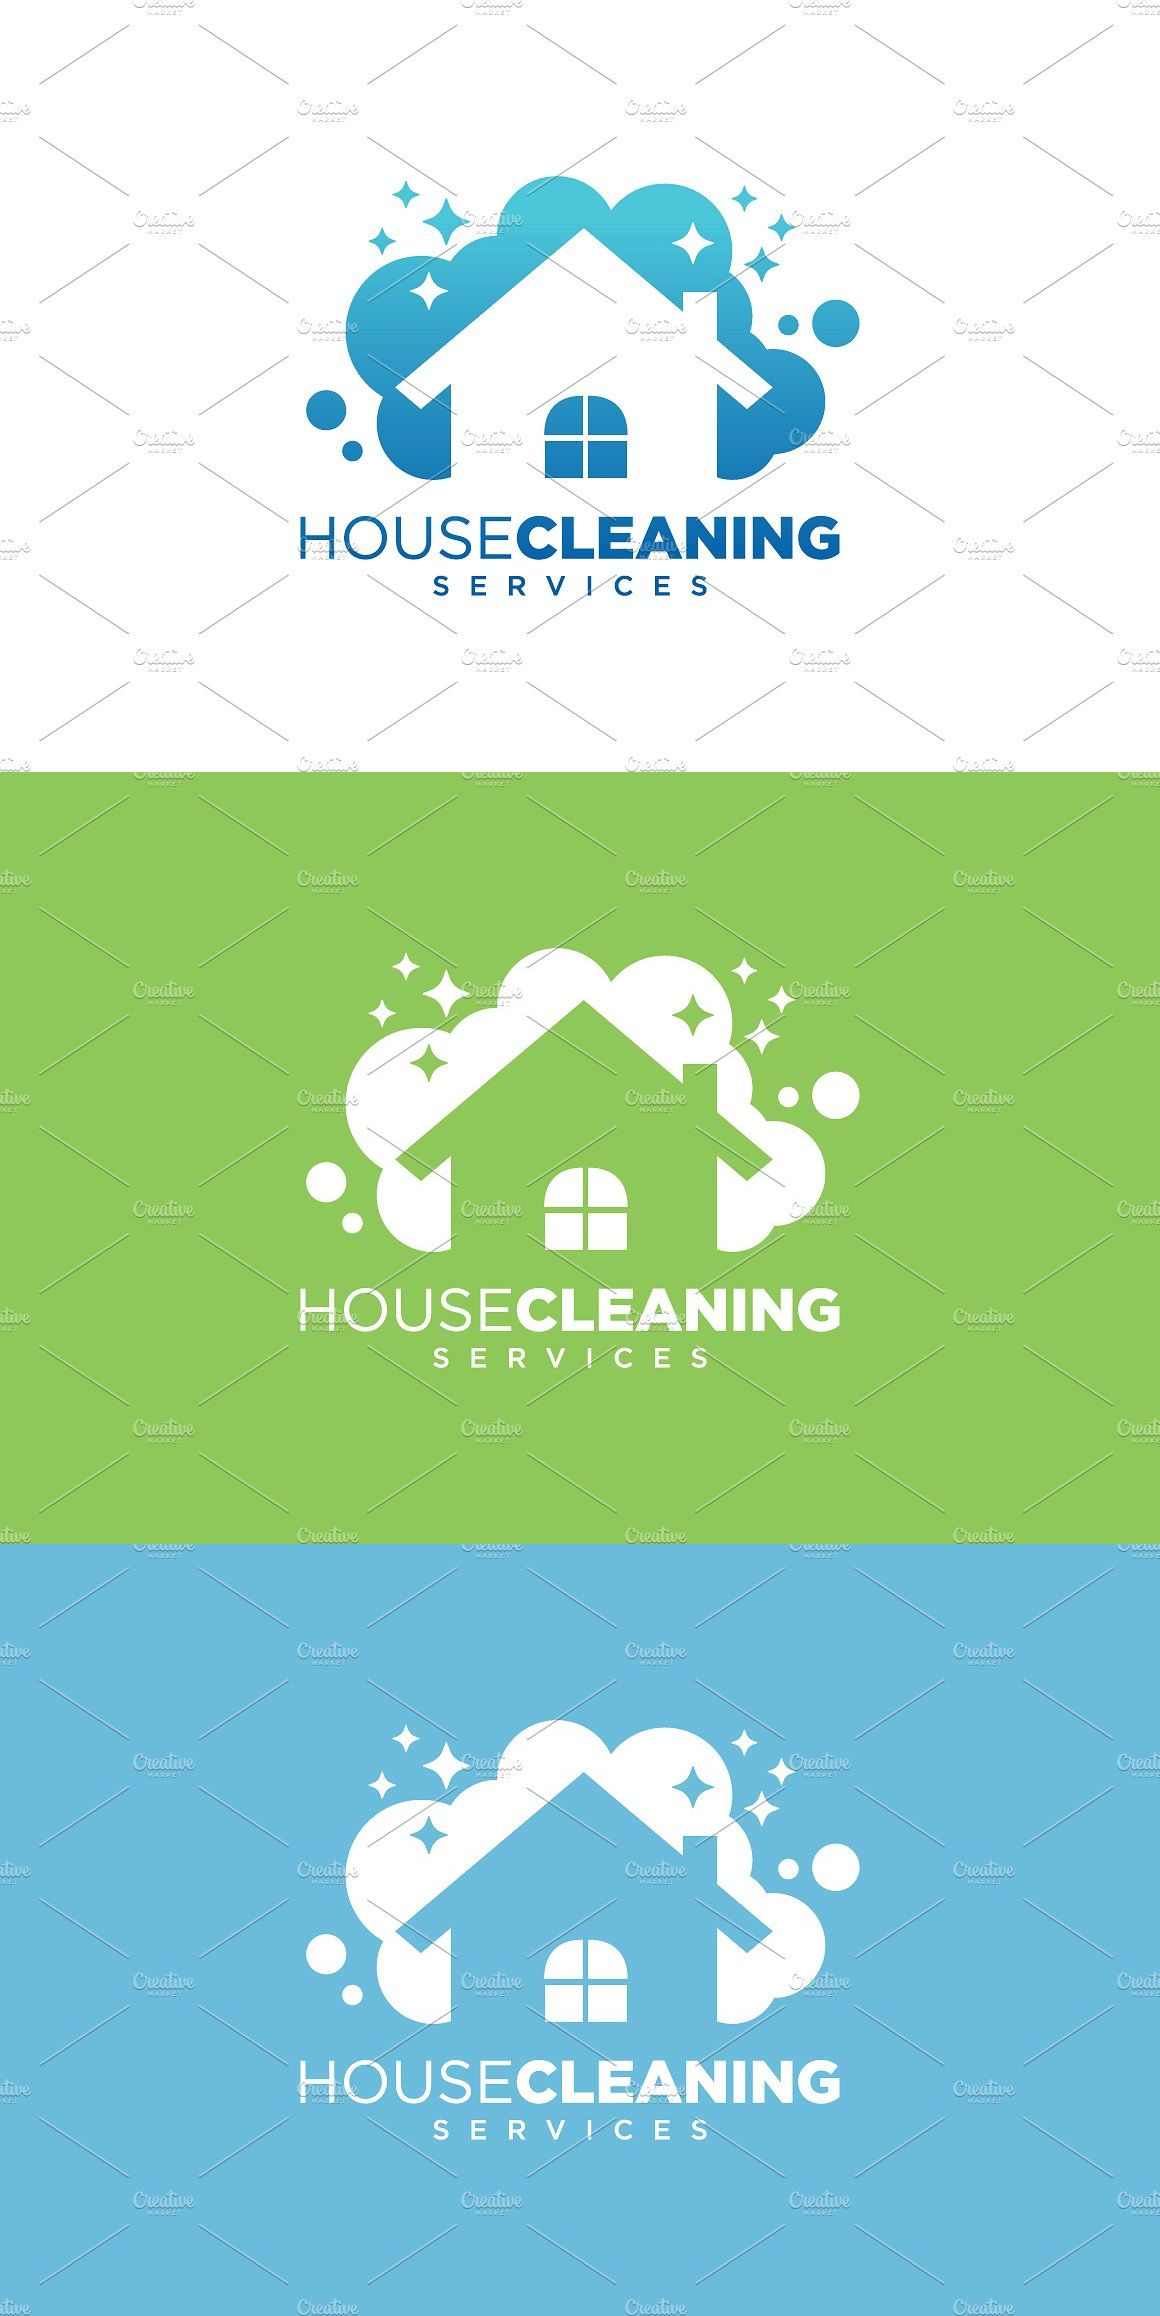 House Cleaning Service Business Cleaning business cards